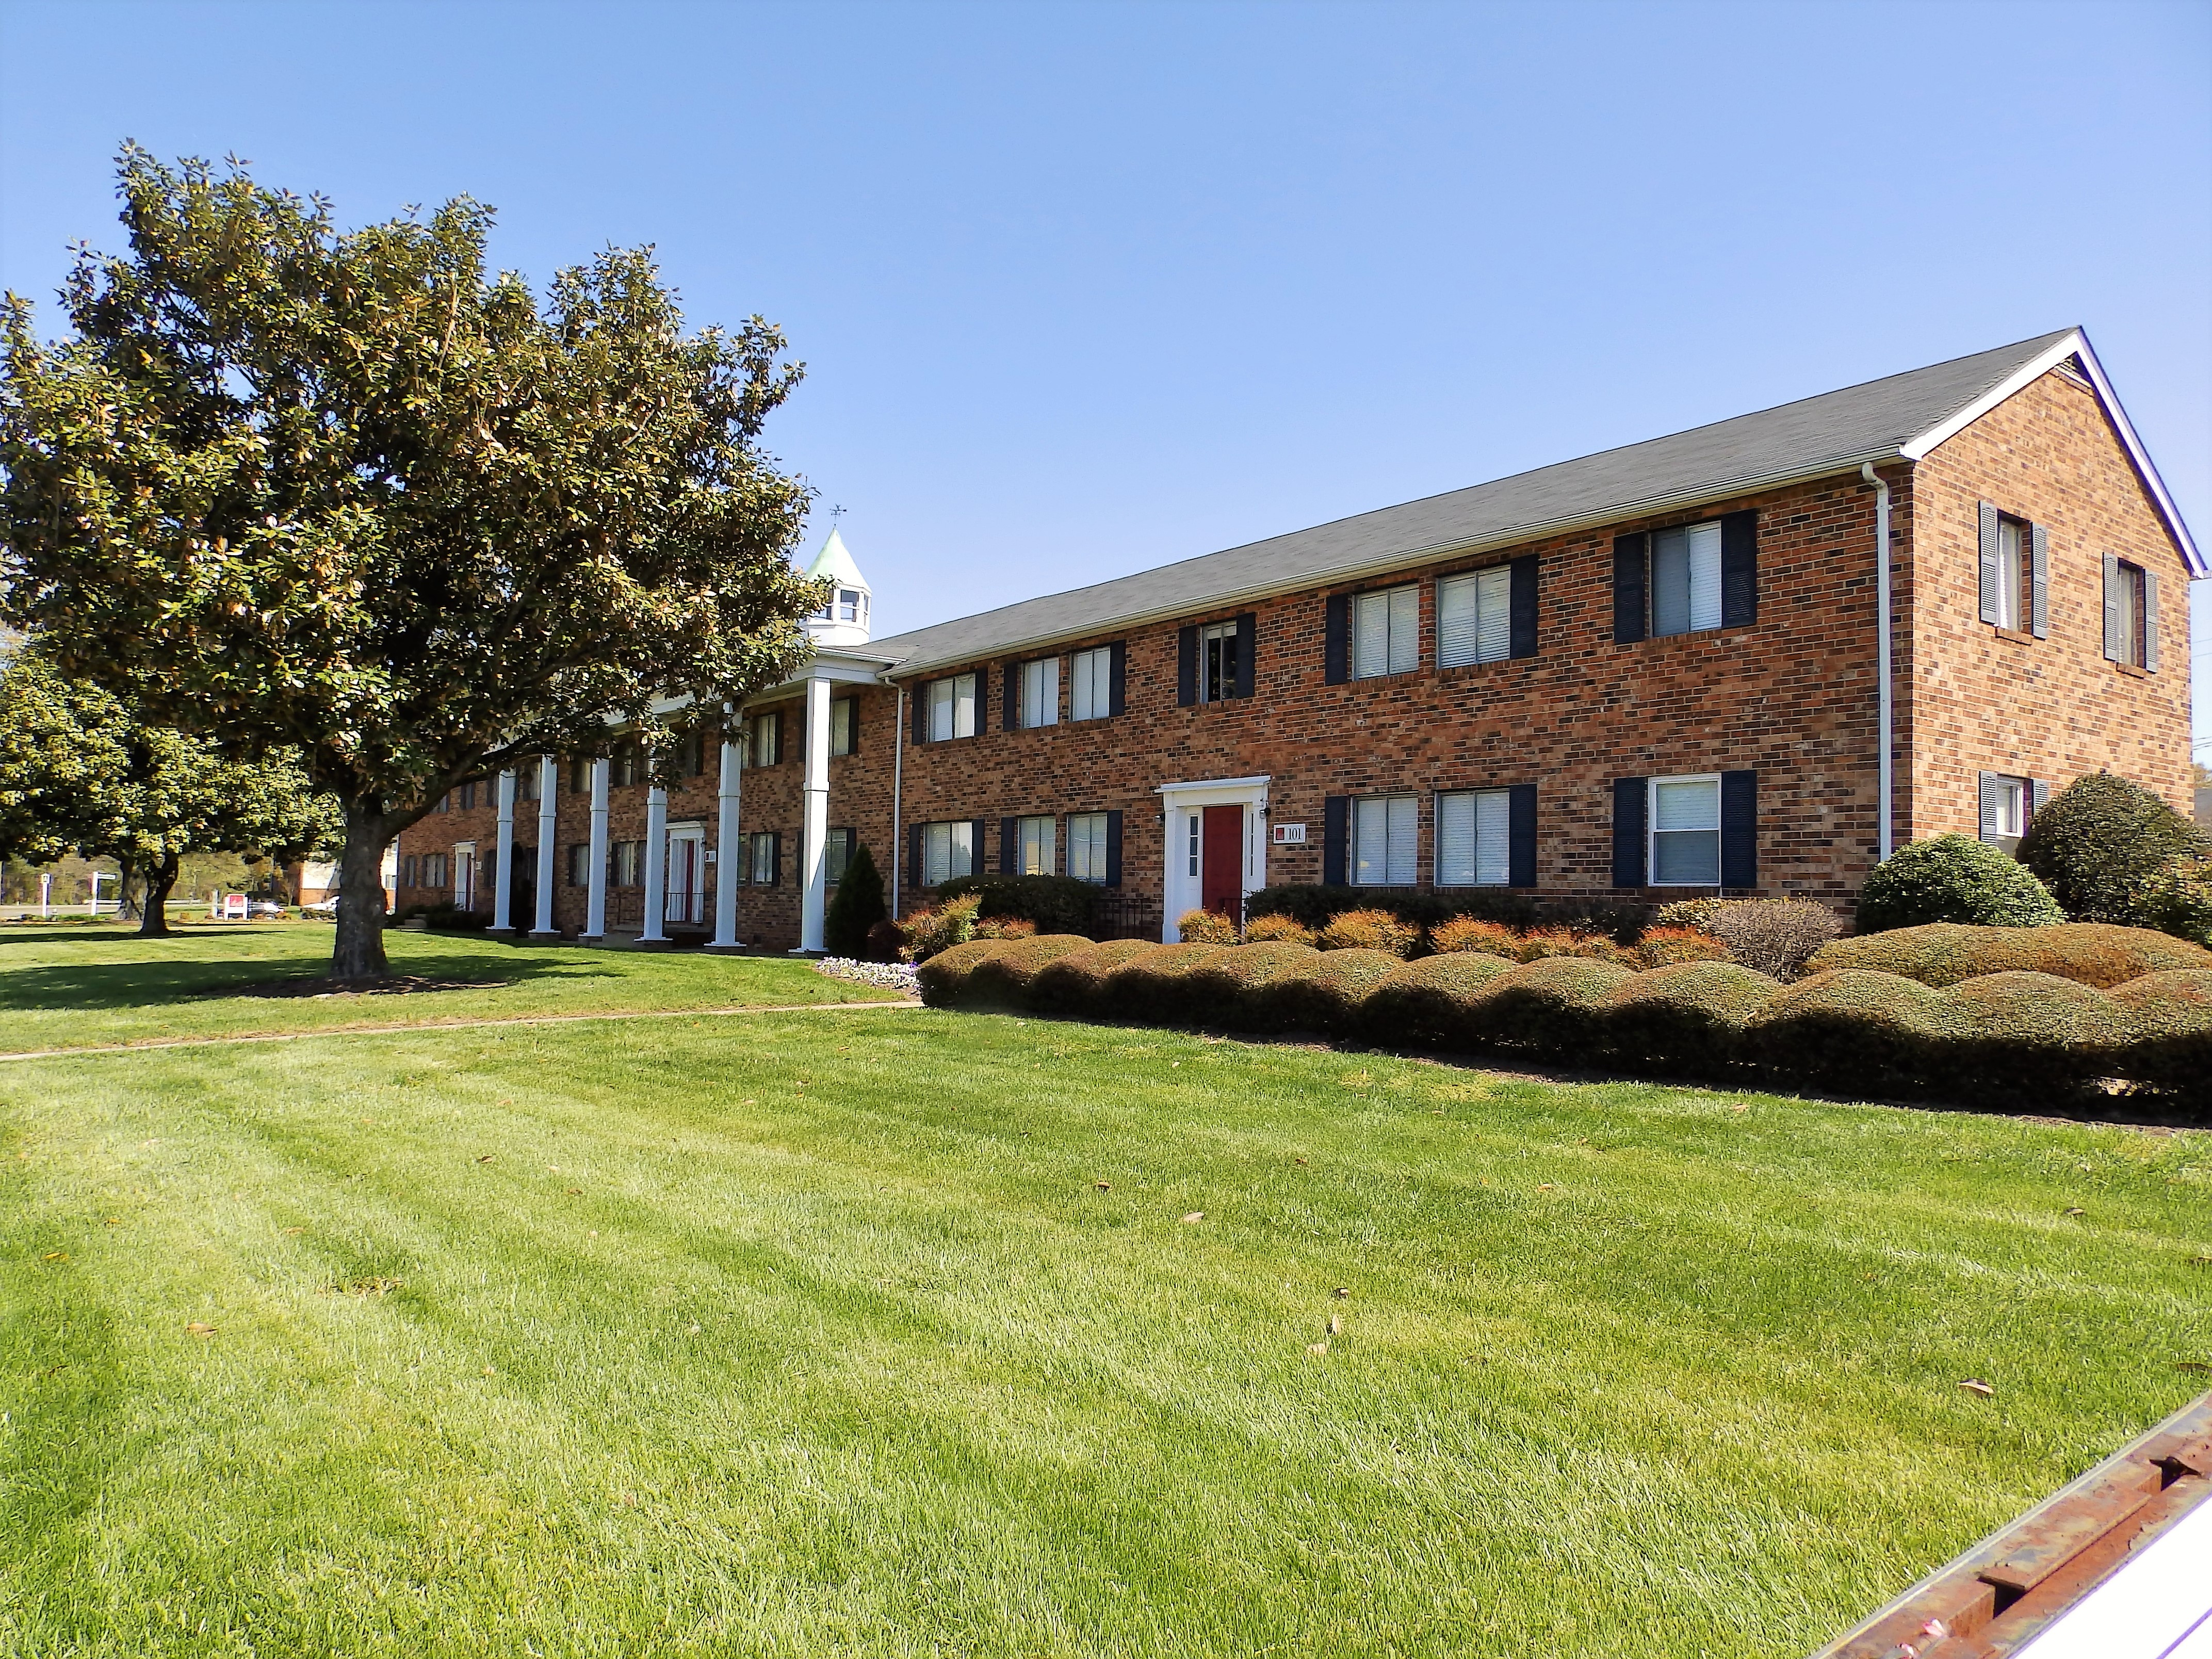 11 North At White Oak Henrico Virginia Apartments For Rent